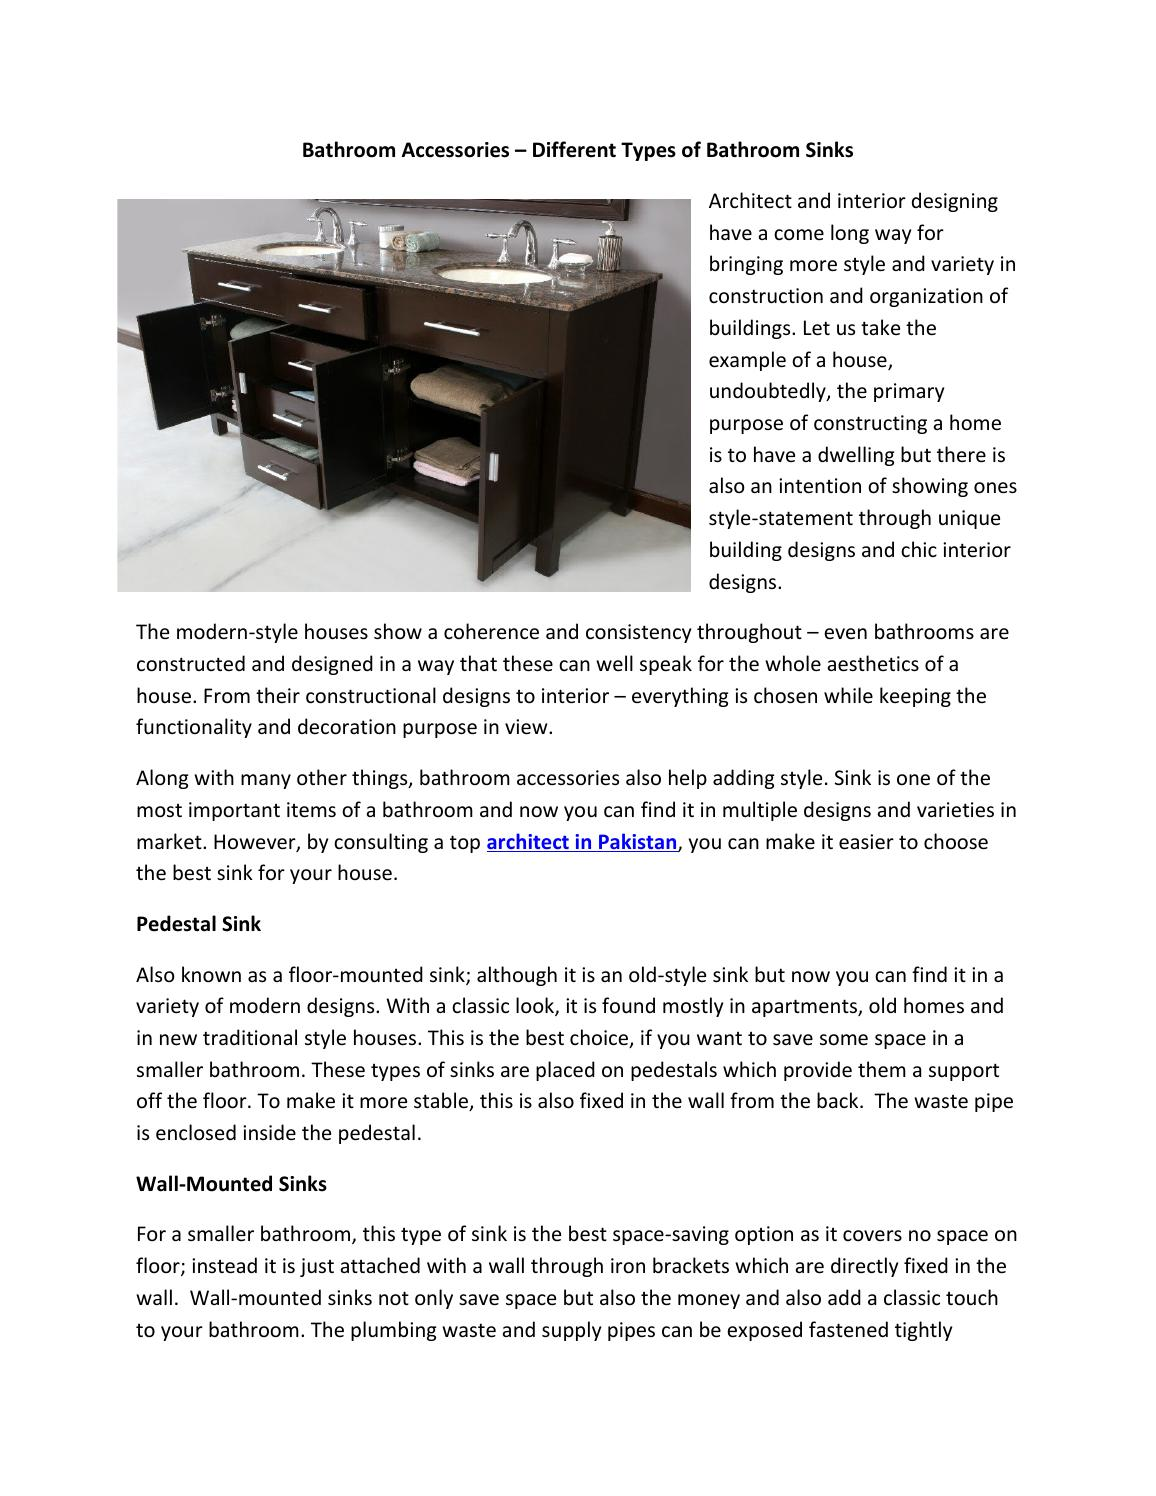 Bathroom Accessories Different Types Of Bathroom Sinks By Hamza Asif Issuu